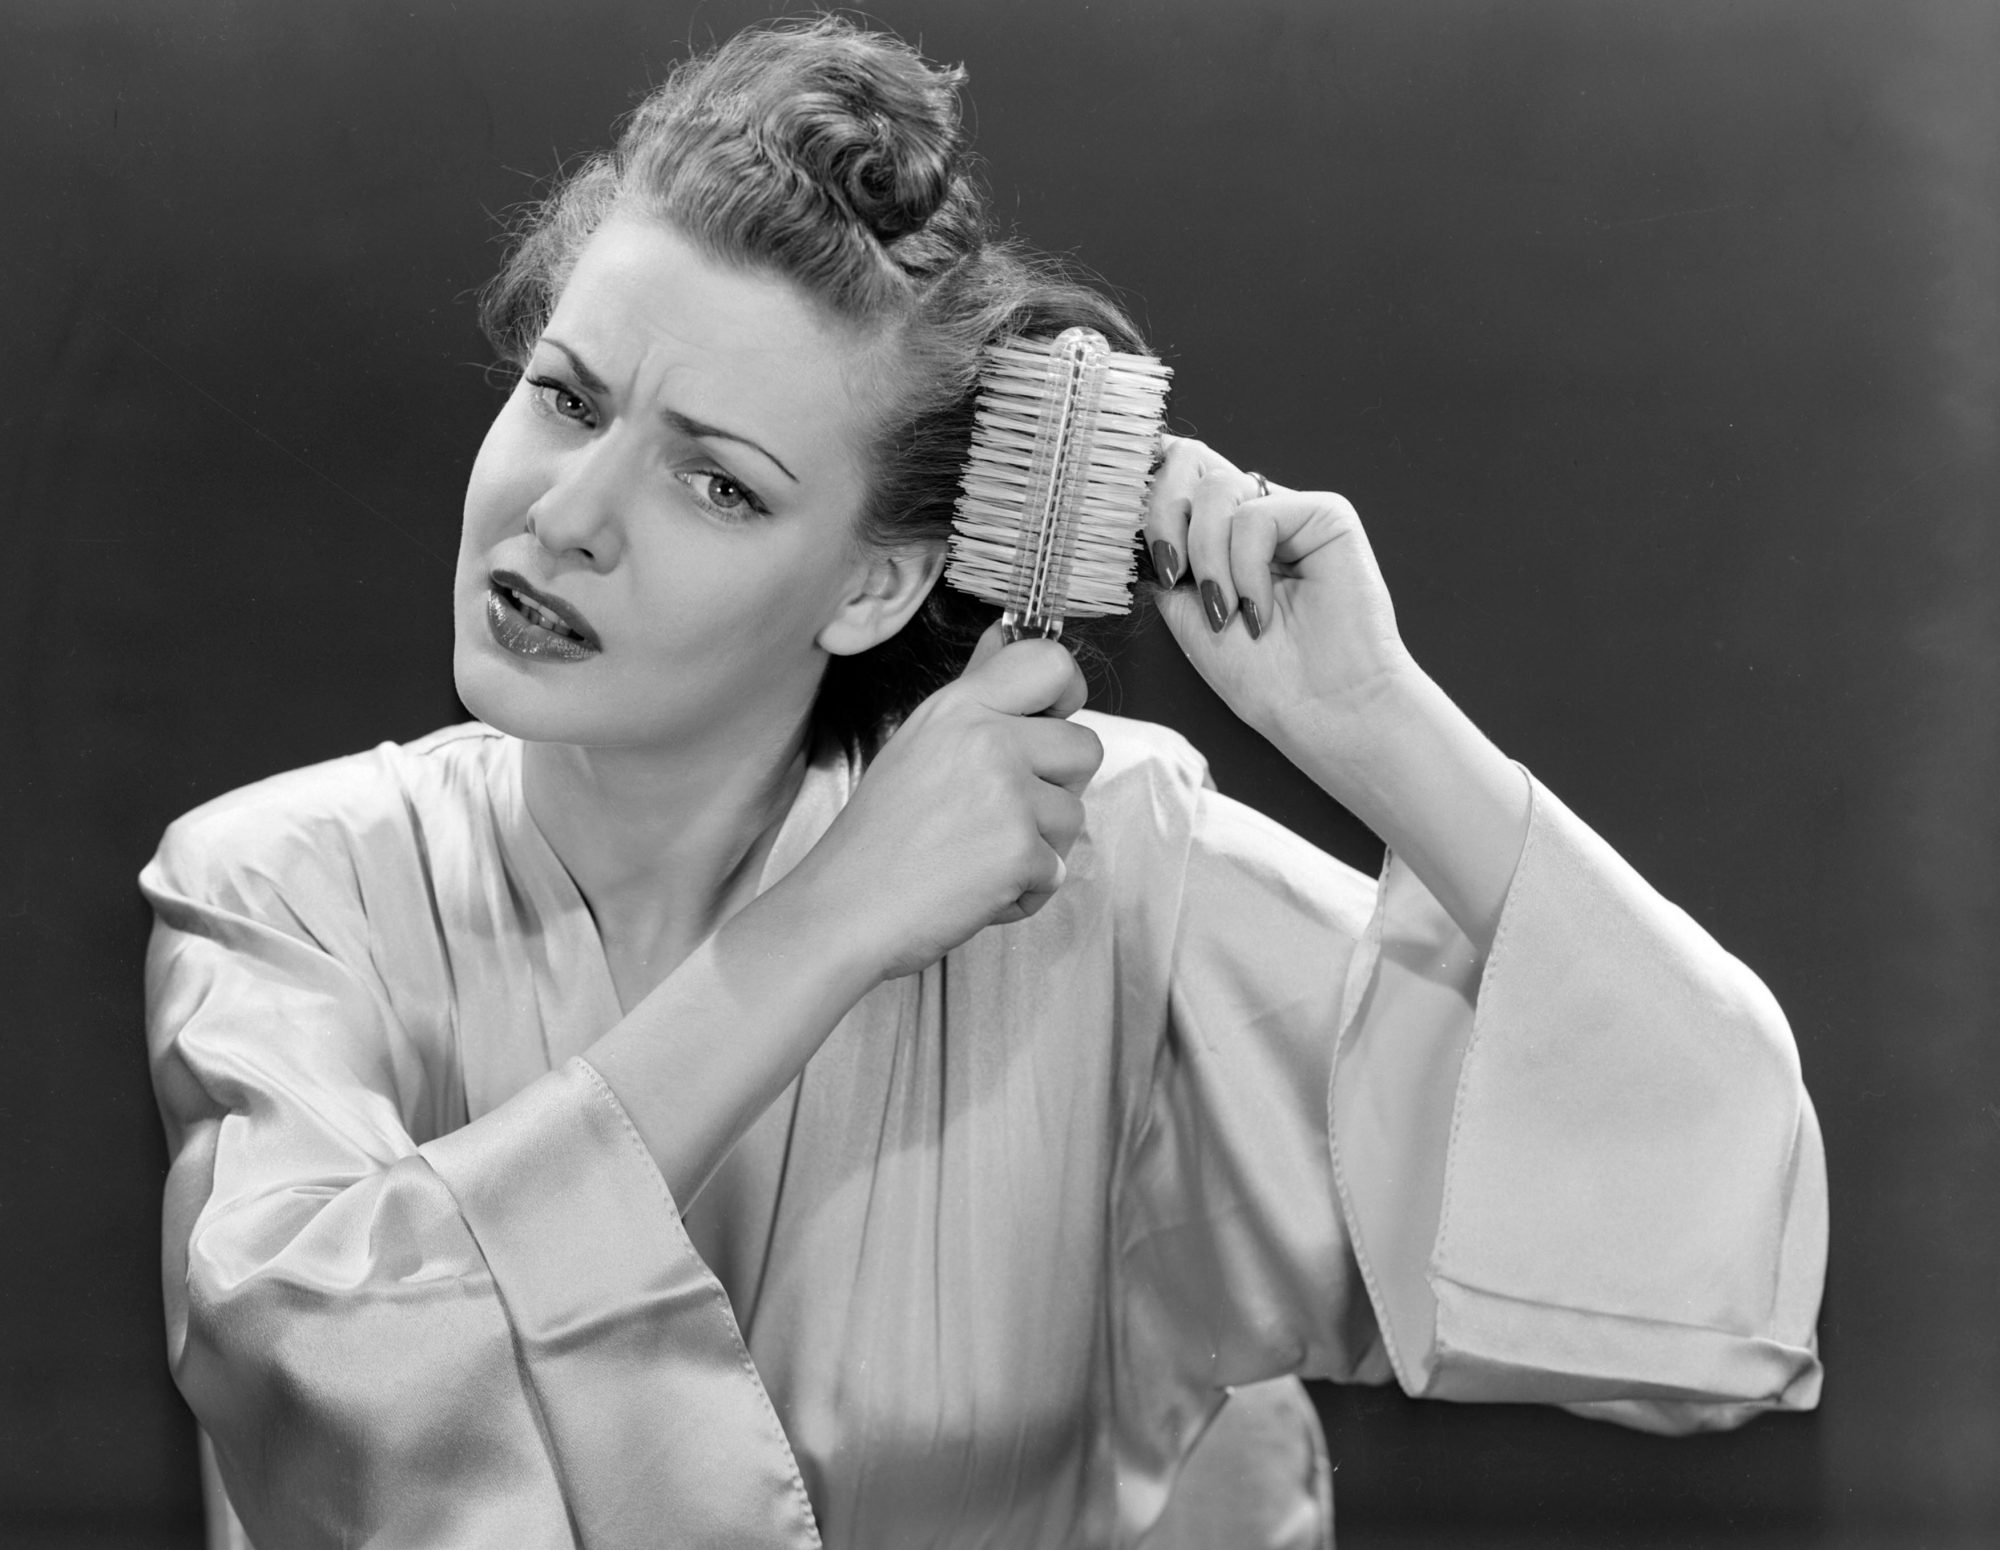 Vintage Woman Brushing Curly Hair